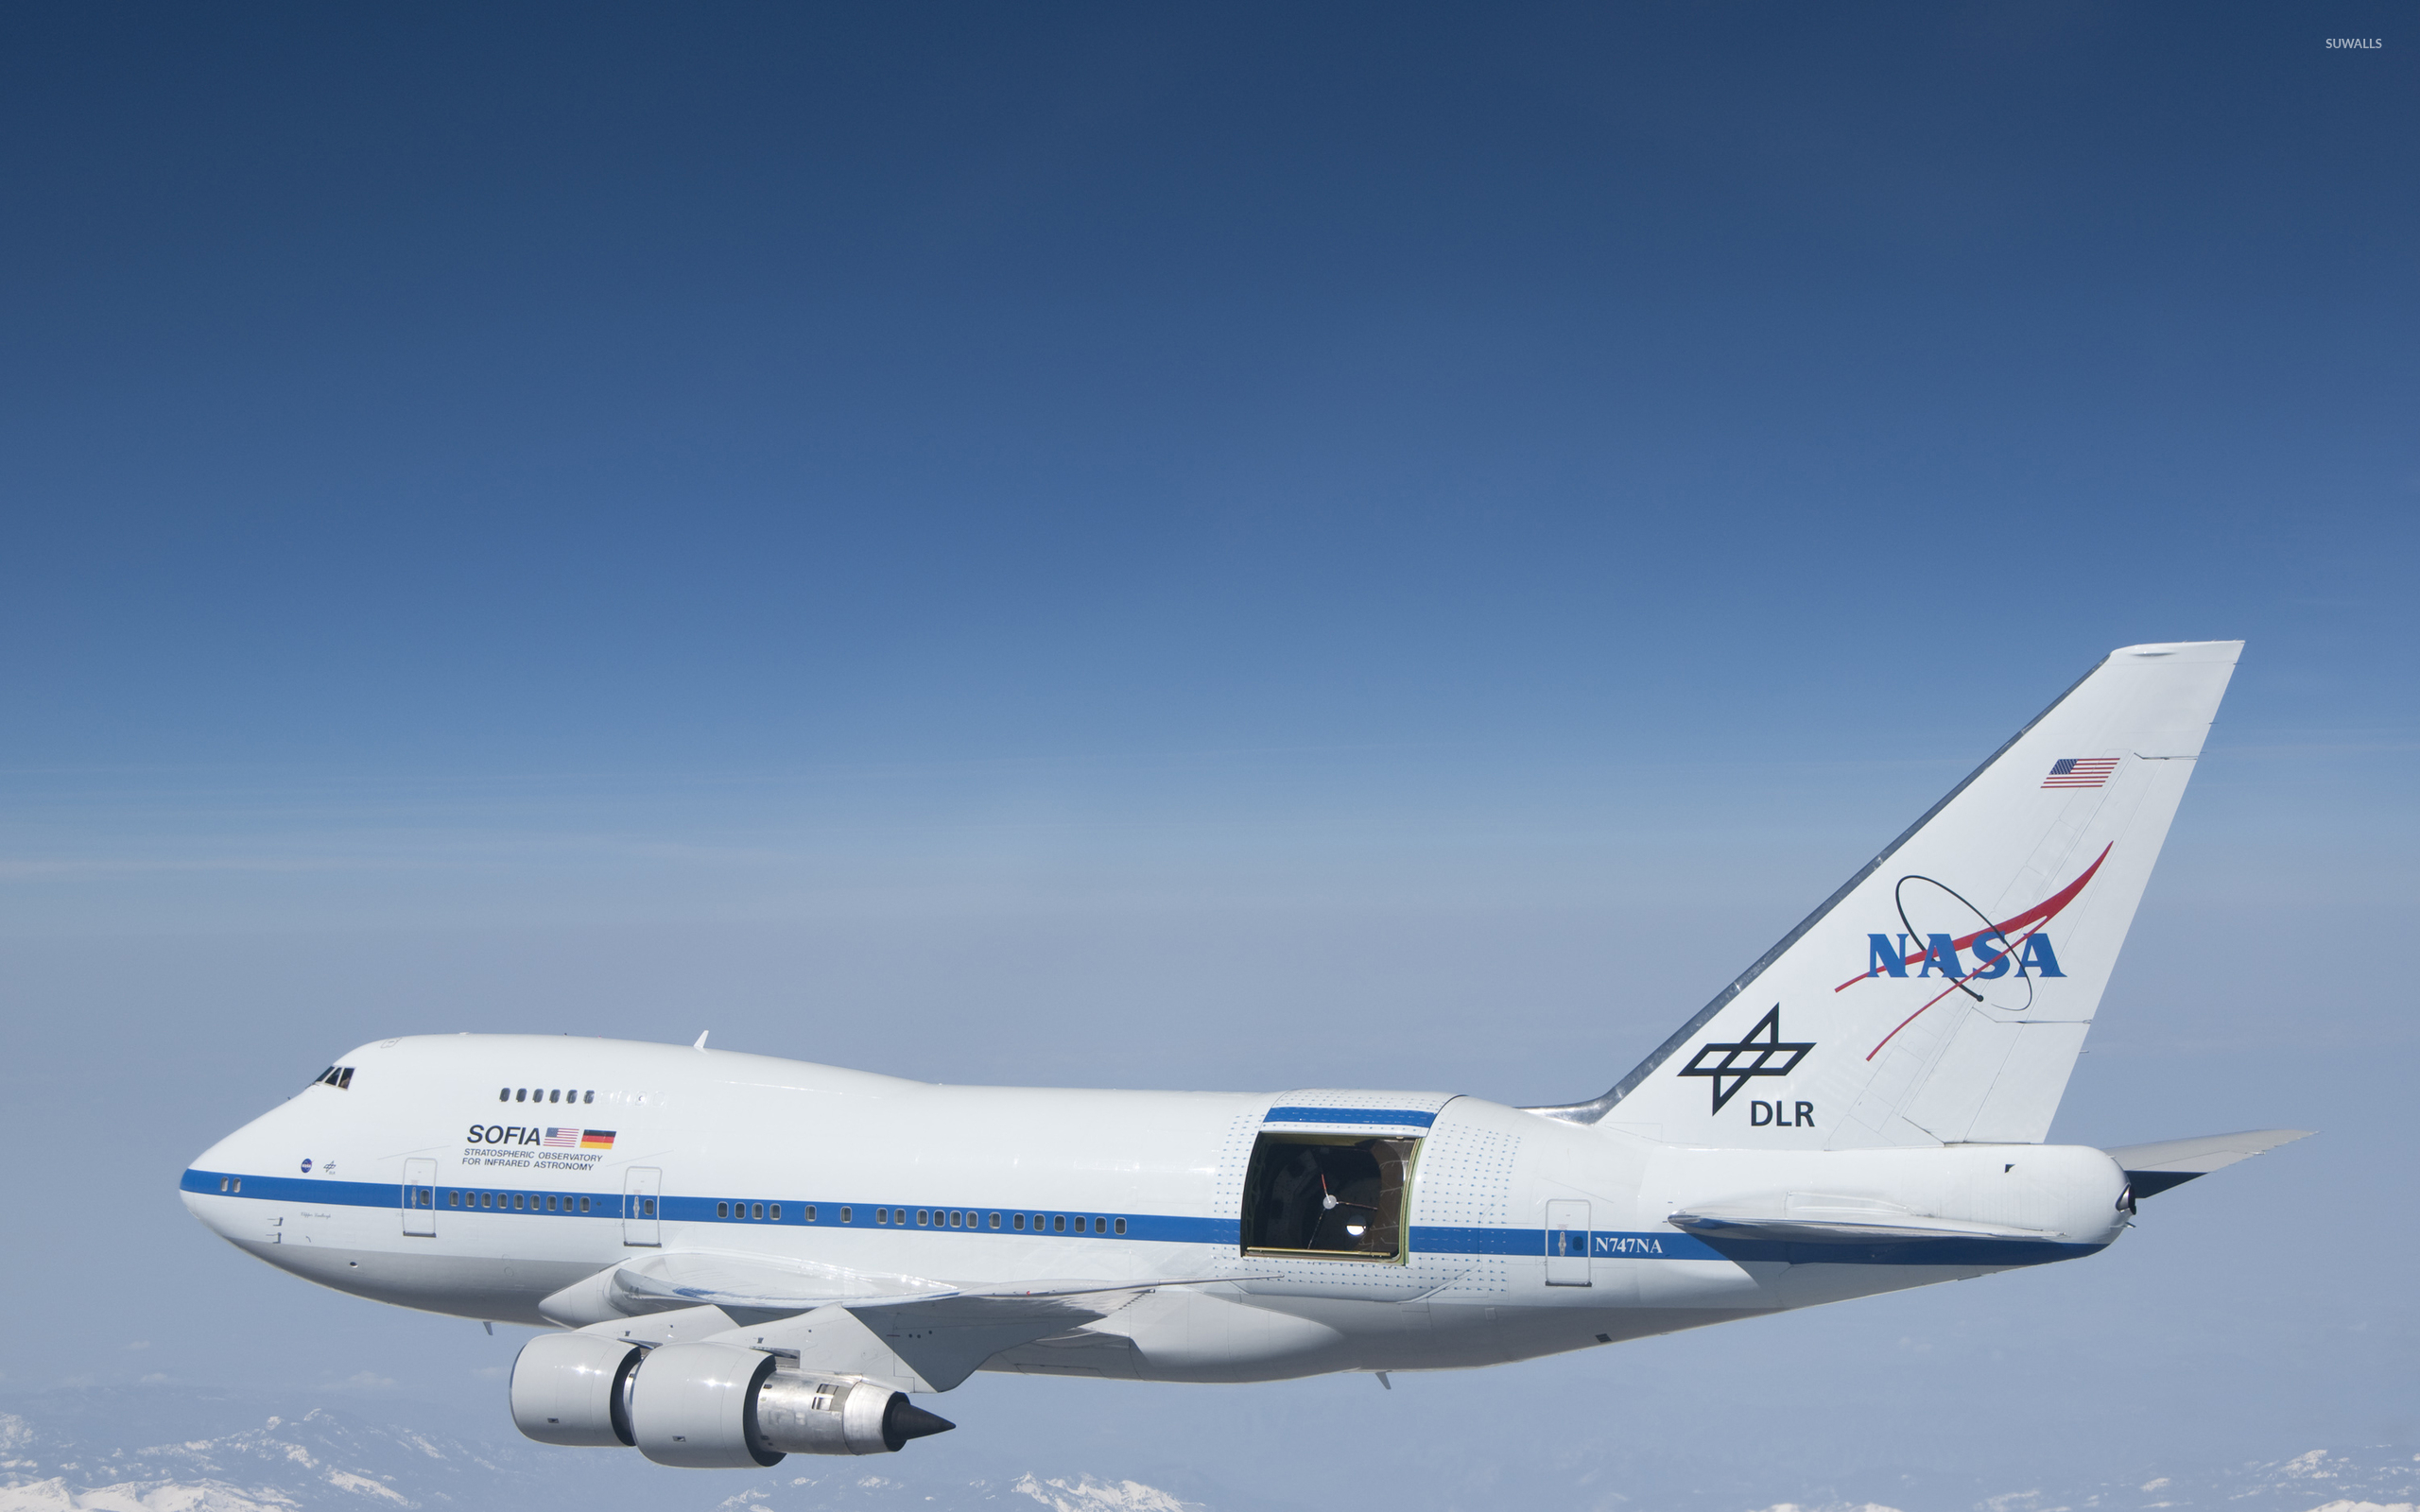 Nasa Boeing 747 Inflight Wallpaper Aircraft Wallpapers Aircraft Wallpaper Flying Magazine